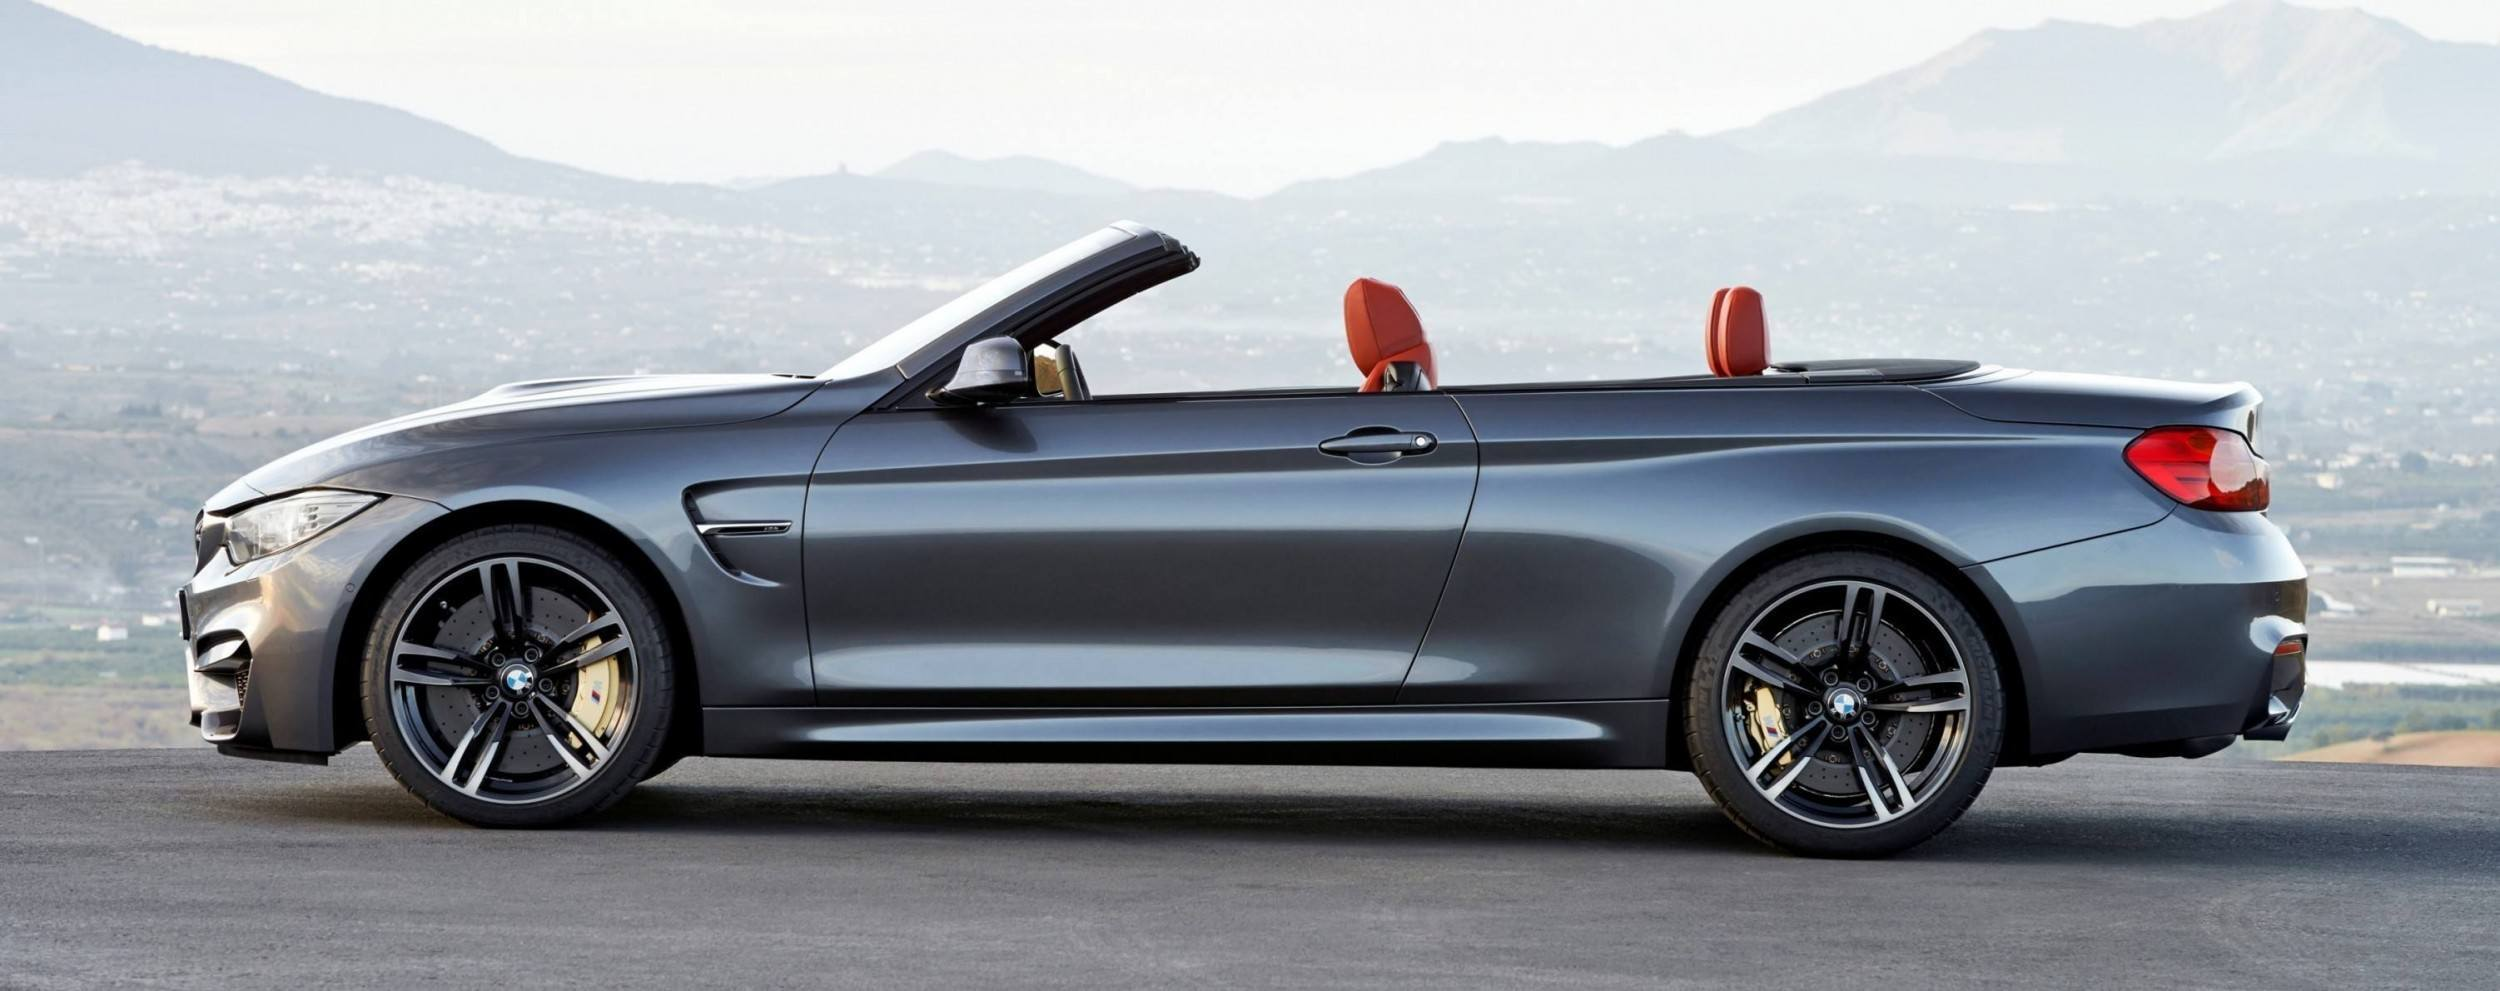 98 New Photos 2017 Bmw M4 Convertible Pricing Colors Options And Specs